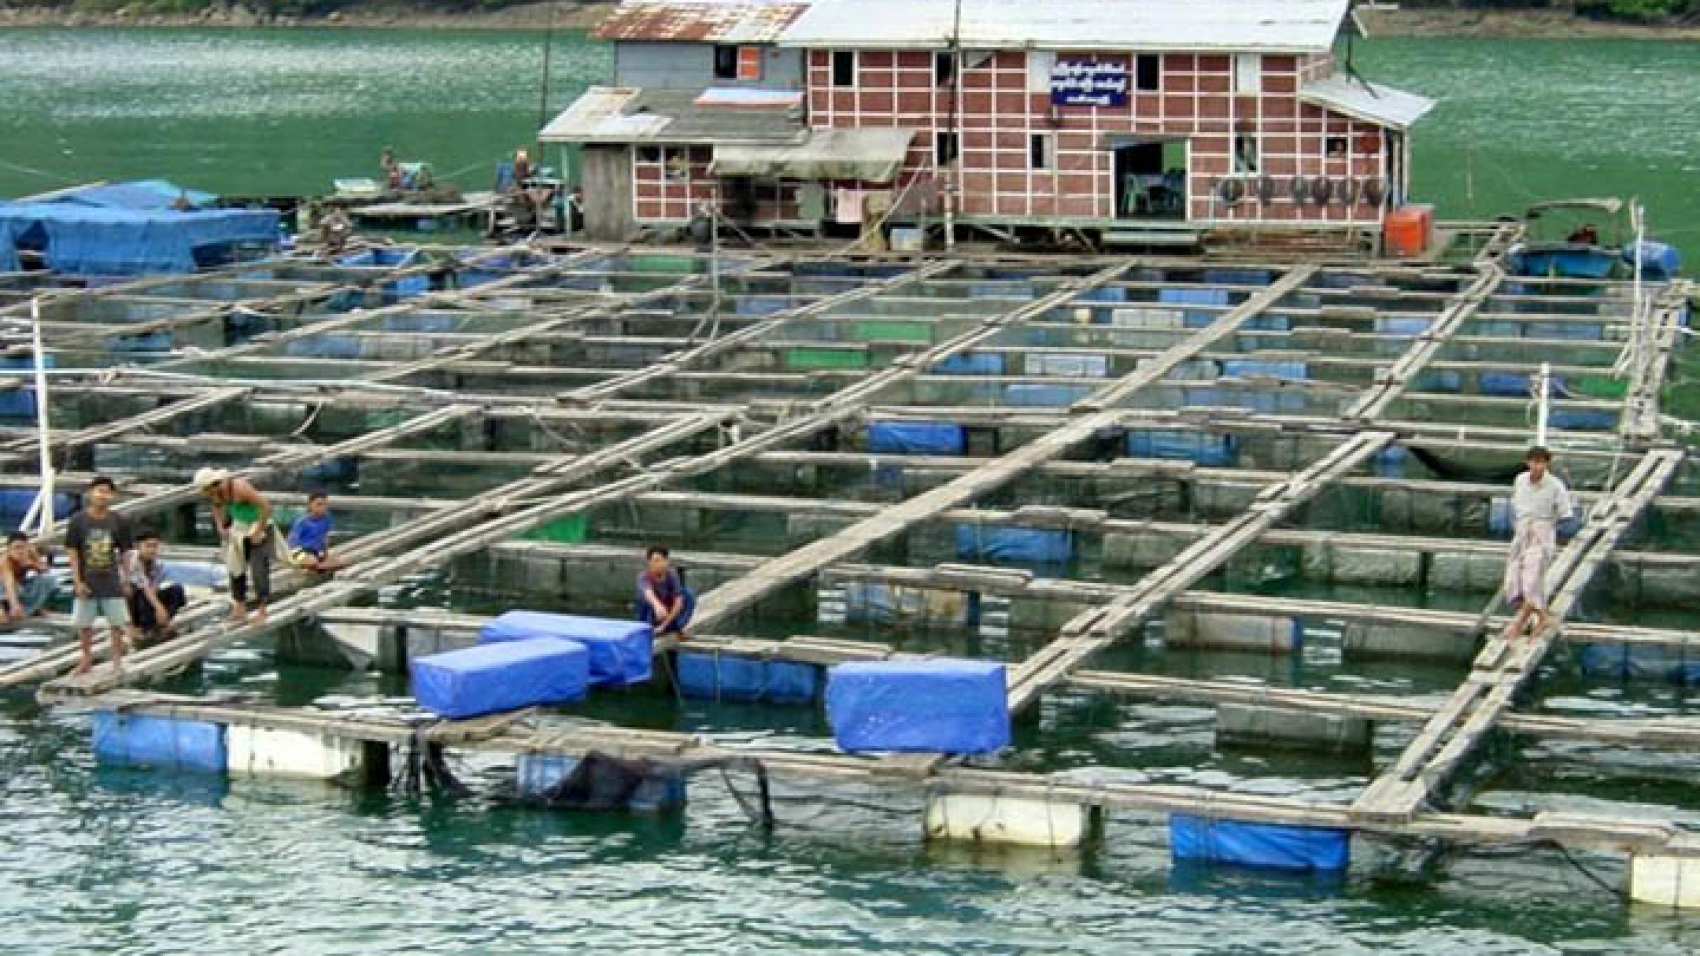 Fish-are-farmed-in-an-artificial-pond-in-Ayeyawady-Region-where-fish-and-shrimp-farming-businesses-are-likely-to-receive-funding-as-part-of-an-EU-aquaculture-project.-copy